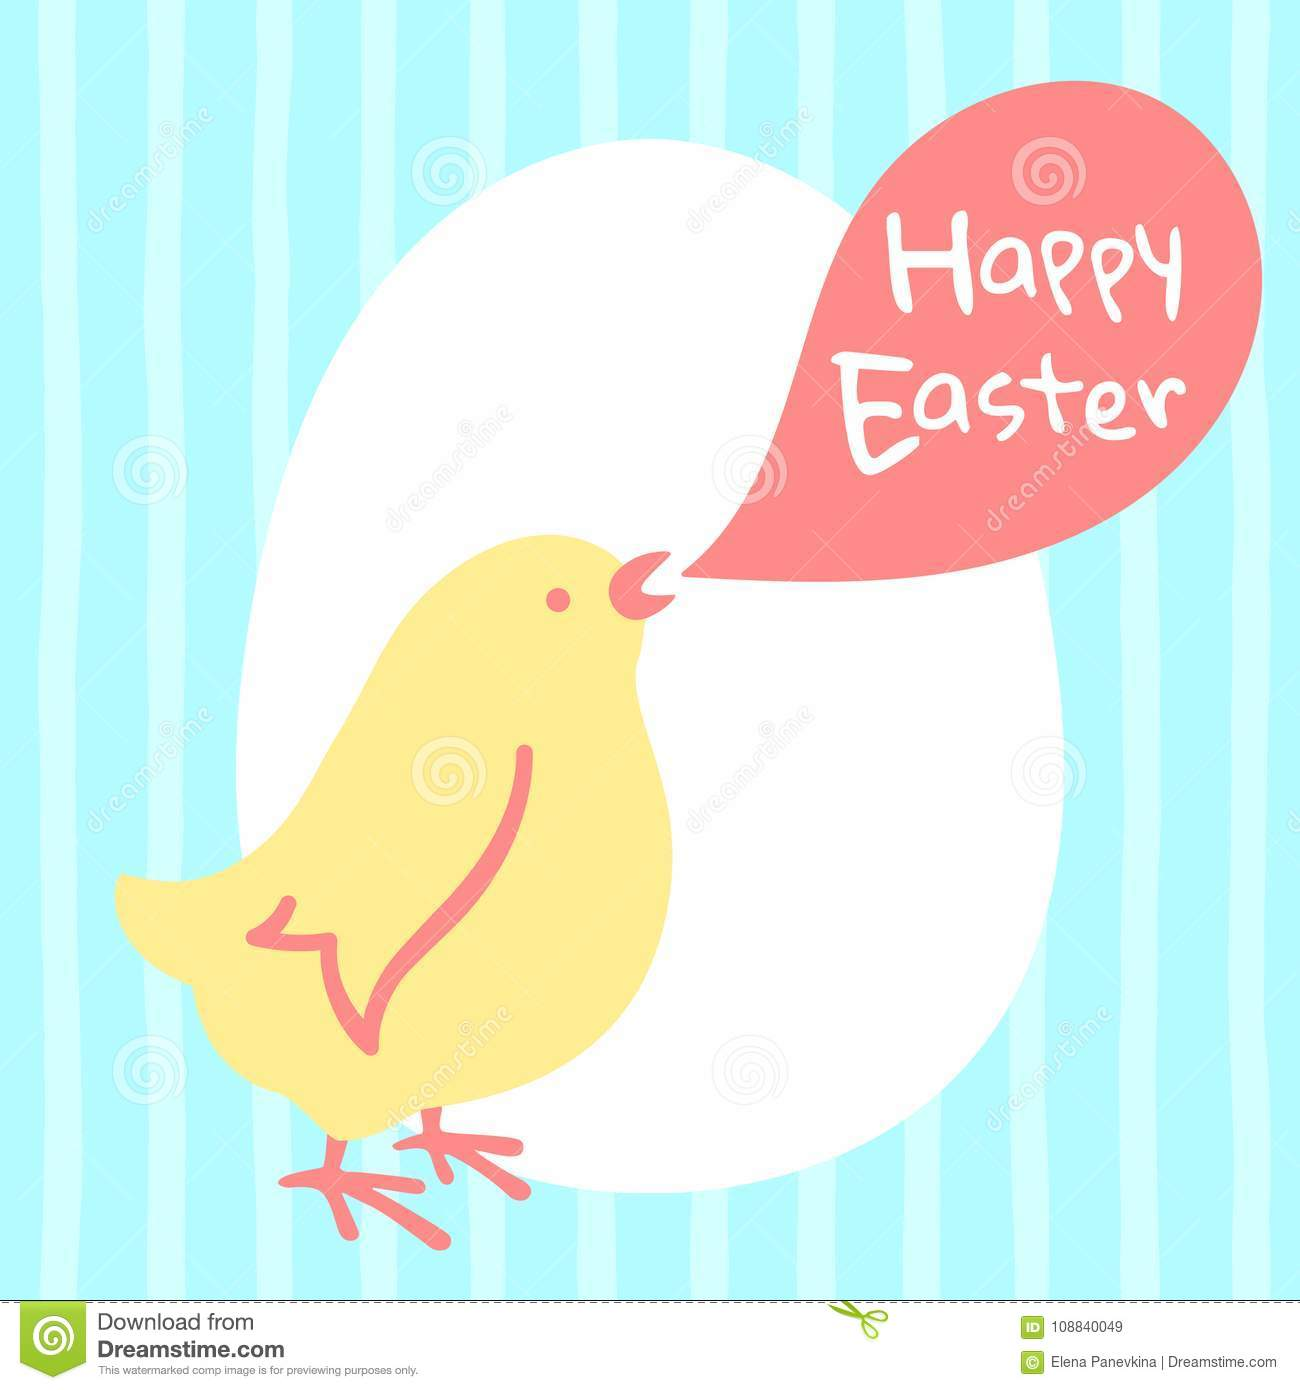 Happy easter greeting card with chicken egg lettering stock vector happy easter simple illustration greeting card with chicken and lettering cute chick with speech bubble egg silhouette and greetings m4hsunfo